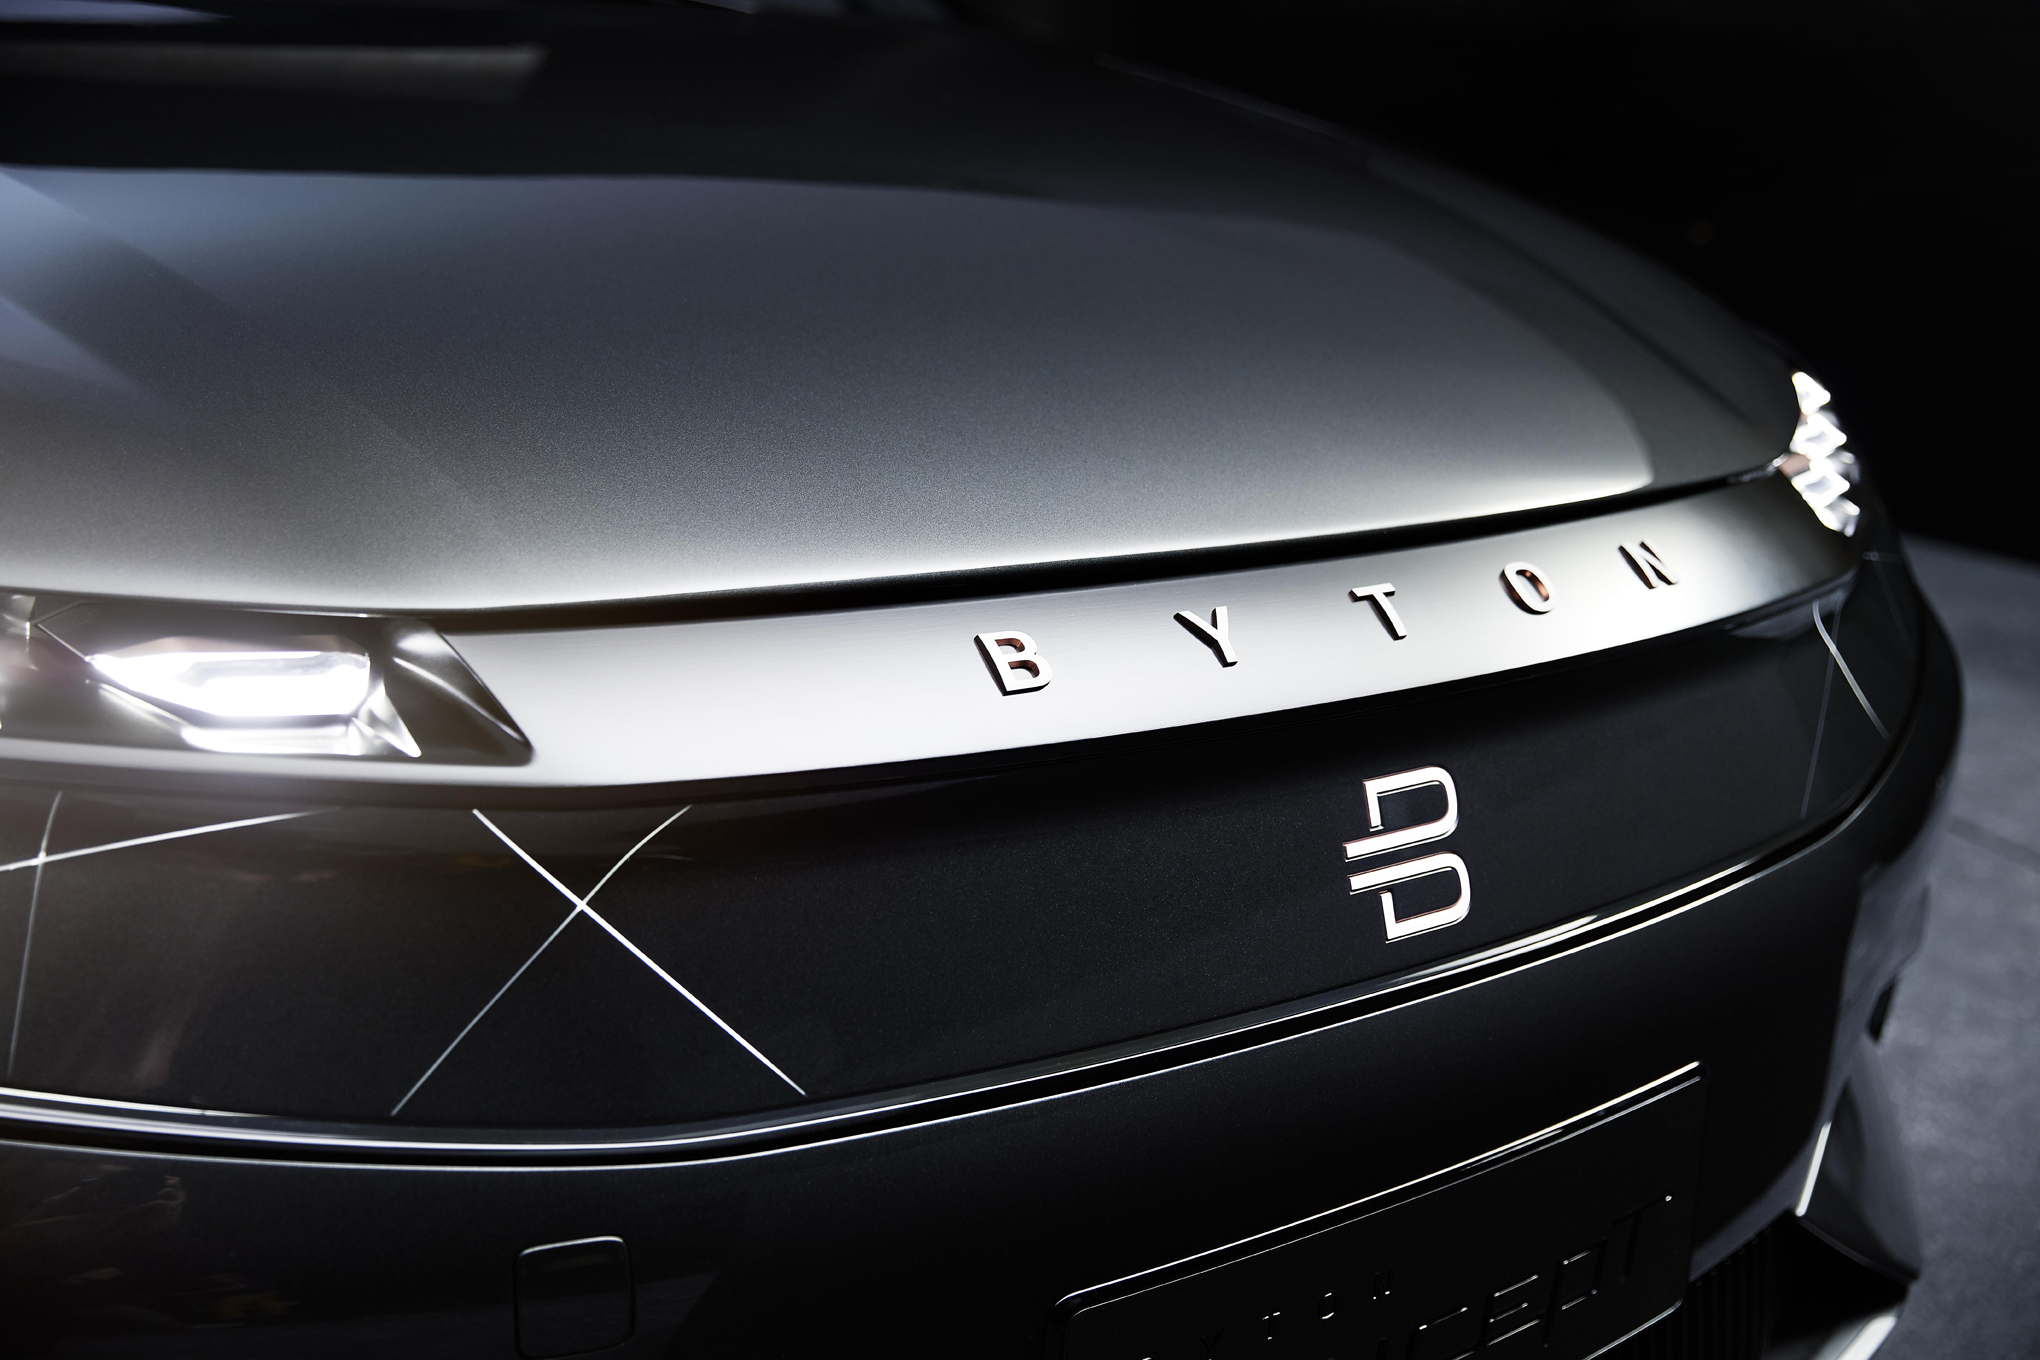 Dubai Car Wallpaper Byton S Electric Suv Concept Is Another Wild Stab At The